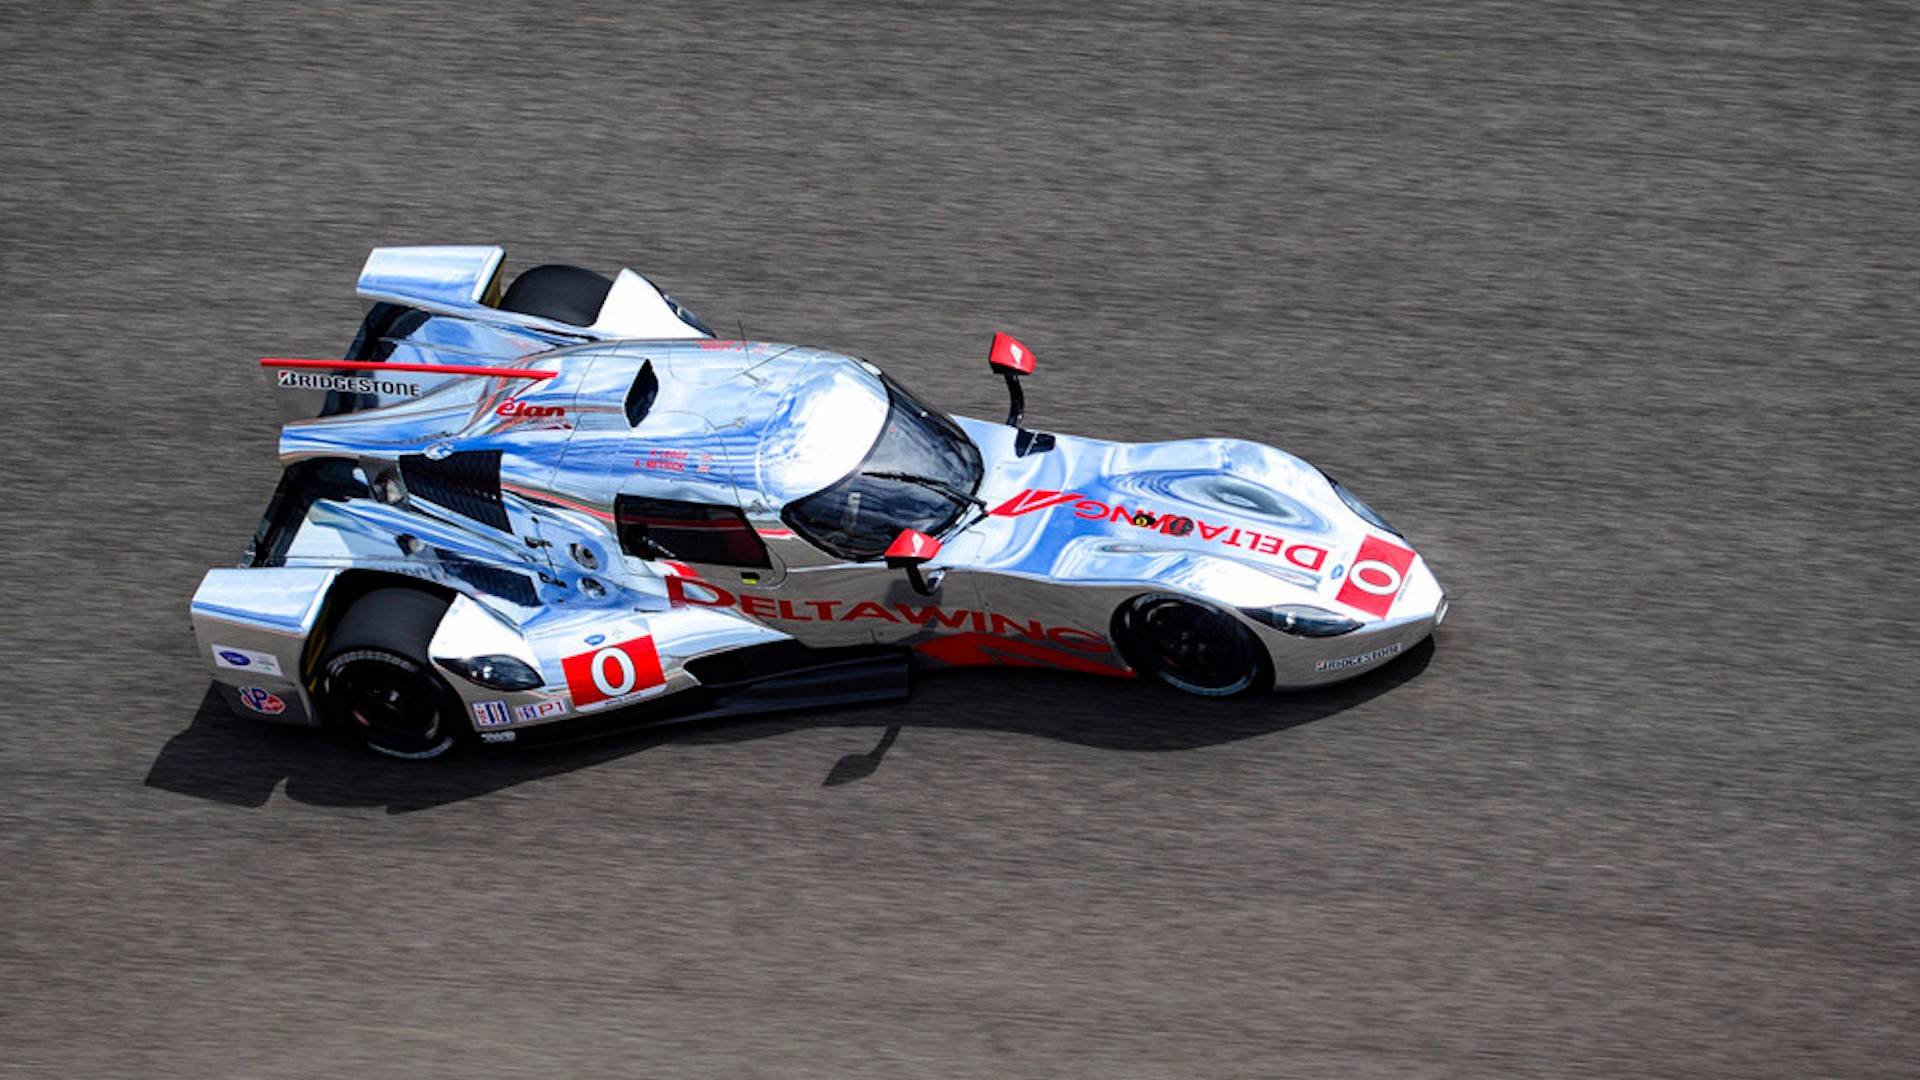 DeltaWing 2013 for sale (4)